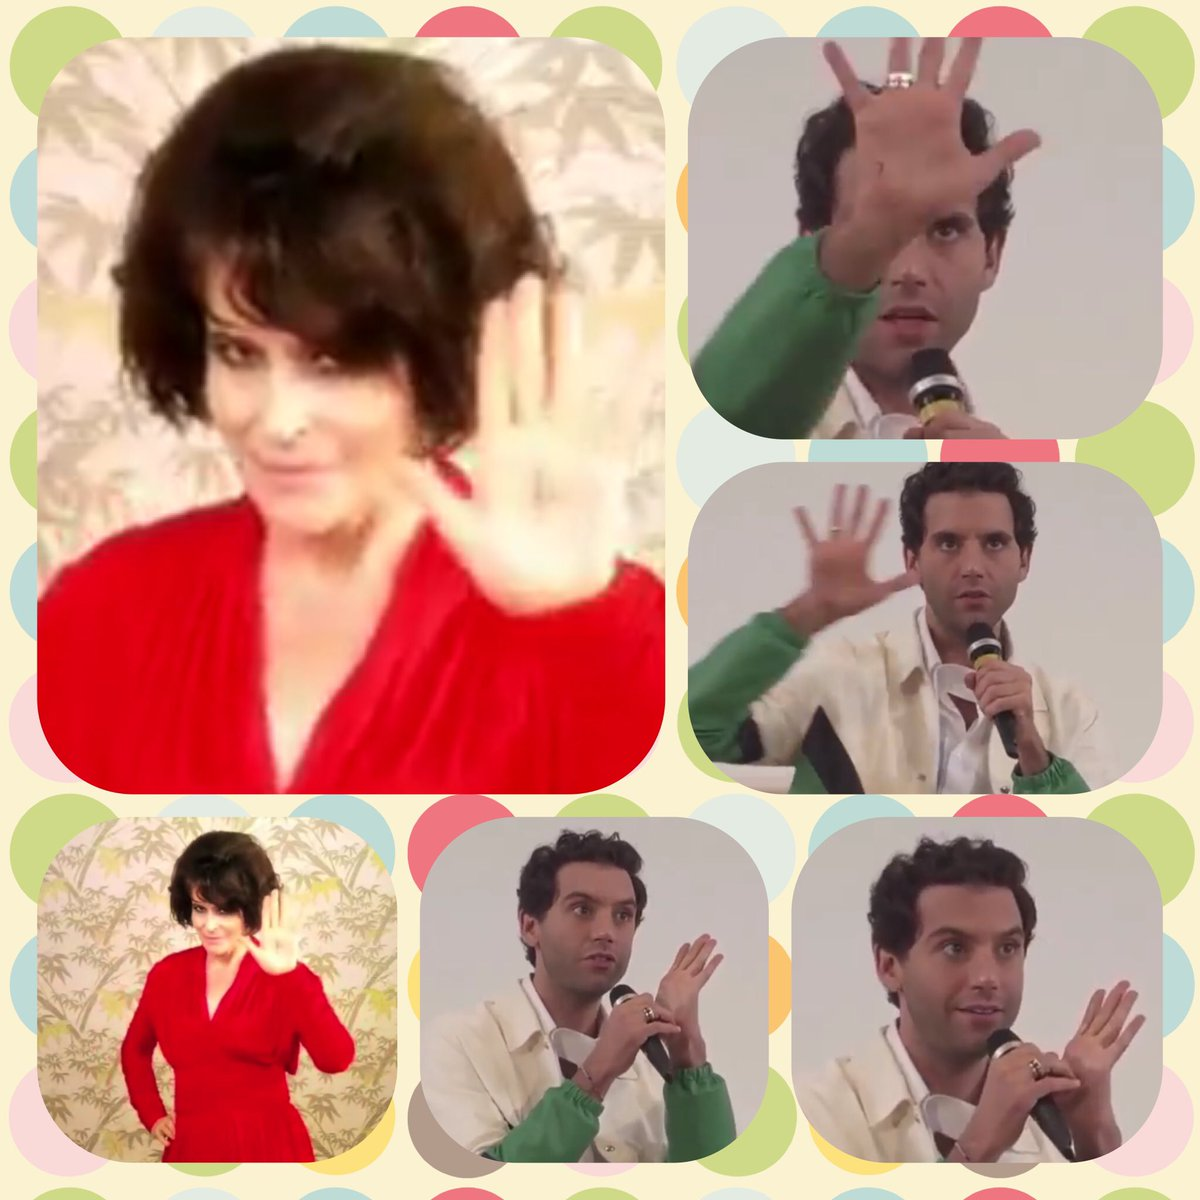 Thank you to a guy from Belarus at Giffoni for asking Mika about EMD. 十 #giffonifilmfest  #mikasounds  #ElleMeDit  #FannyArdant <br>http://pic.twitter.com/xaR4SS40cd